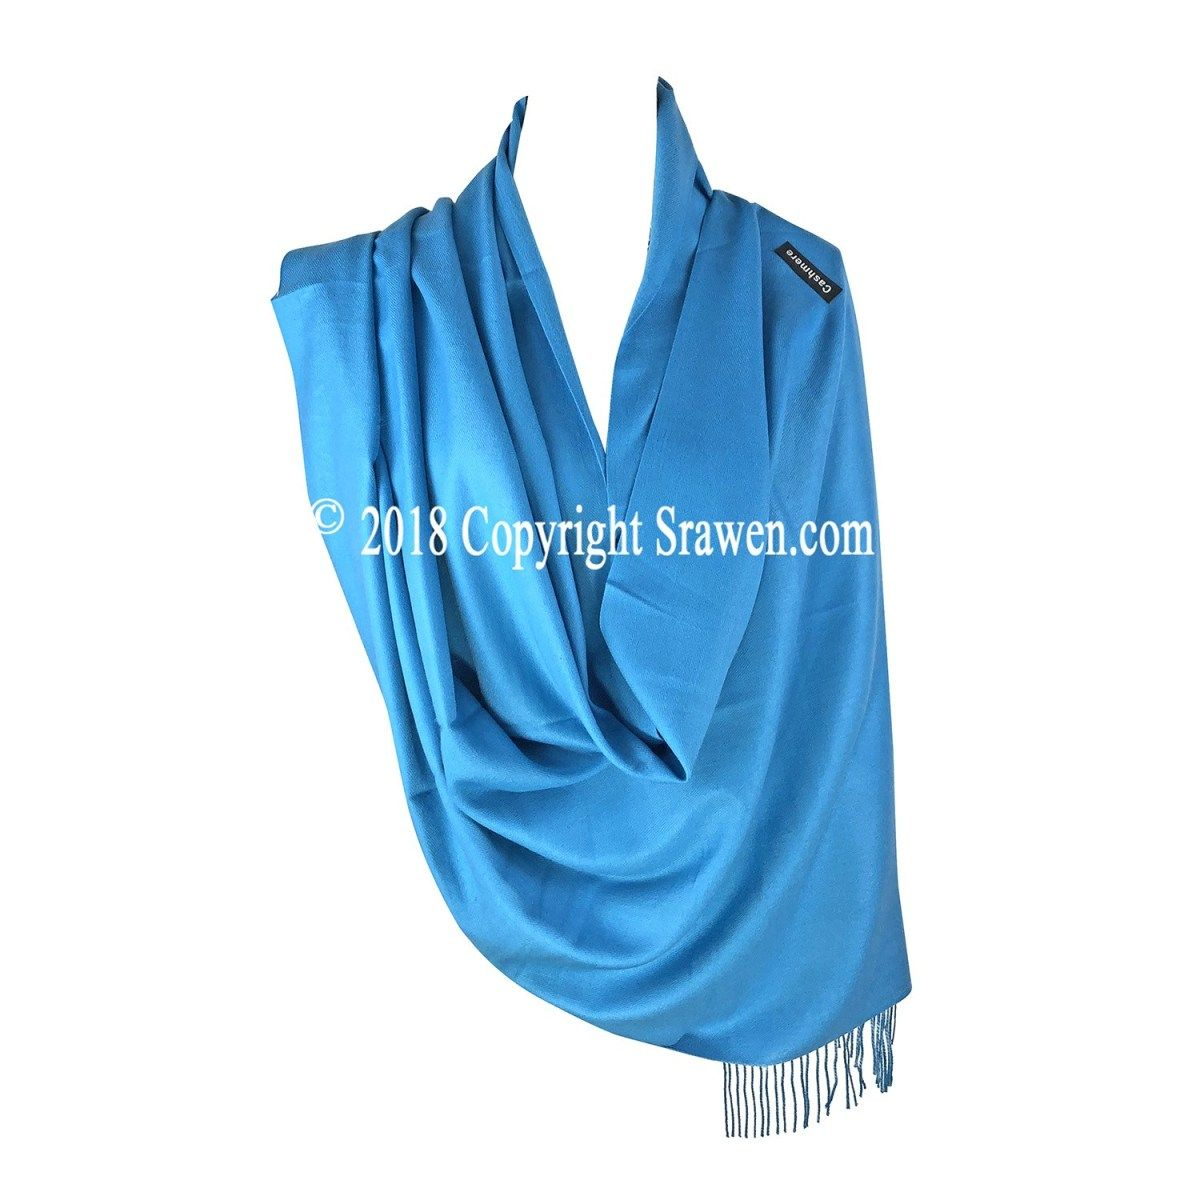 Teal Green High Grade 100/% Cashmere Shawl Pashmina Wrap Hand Made in Nepal *NEW*